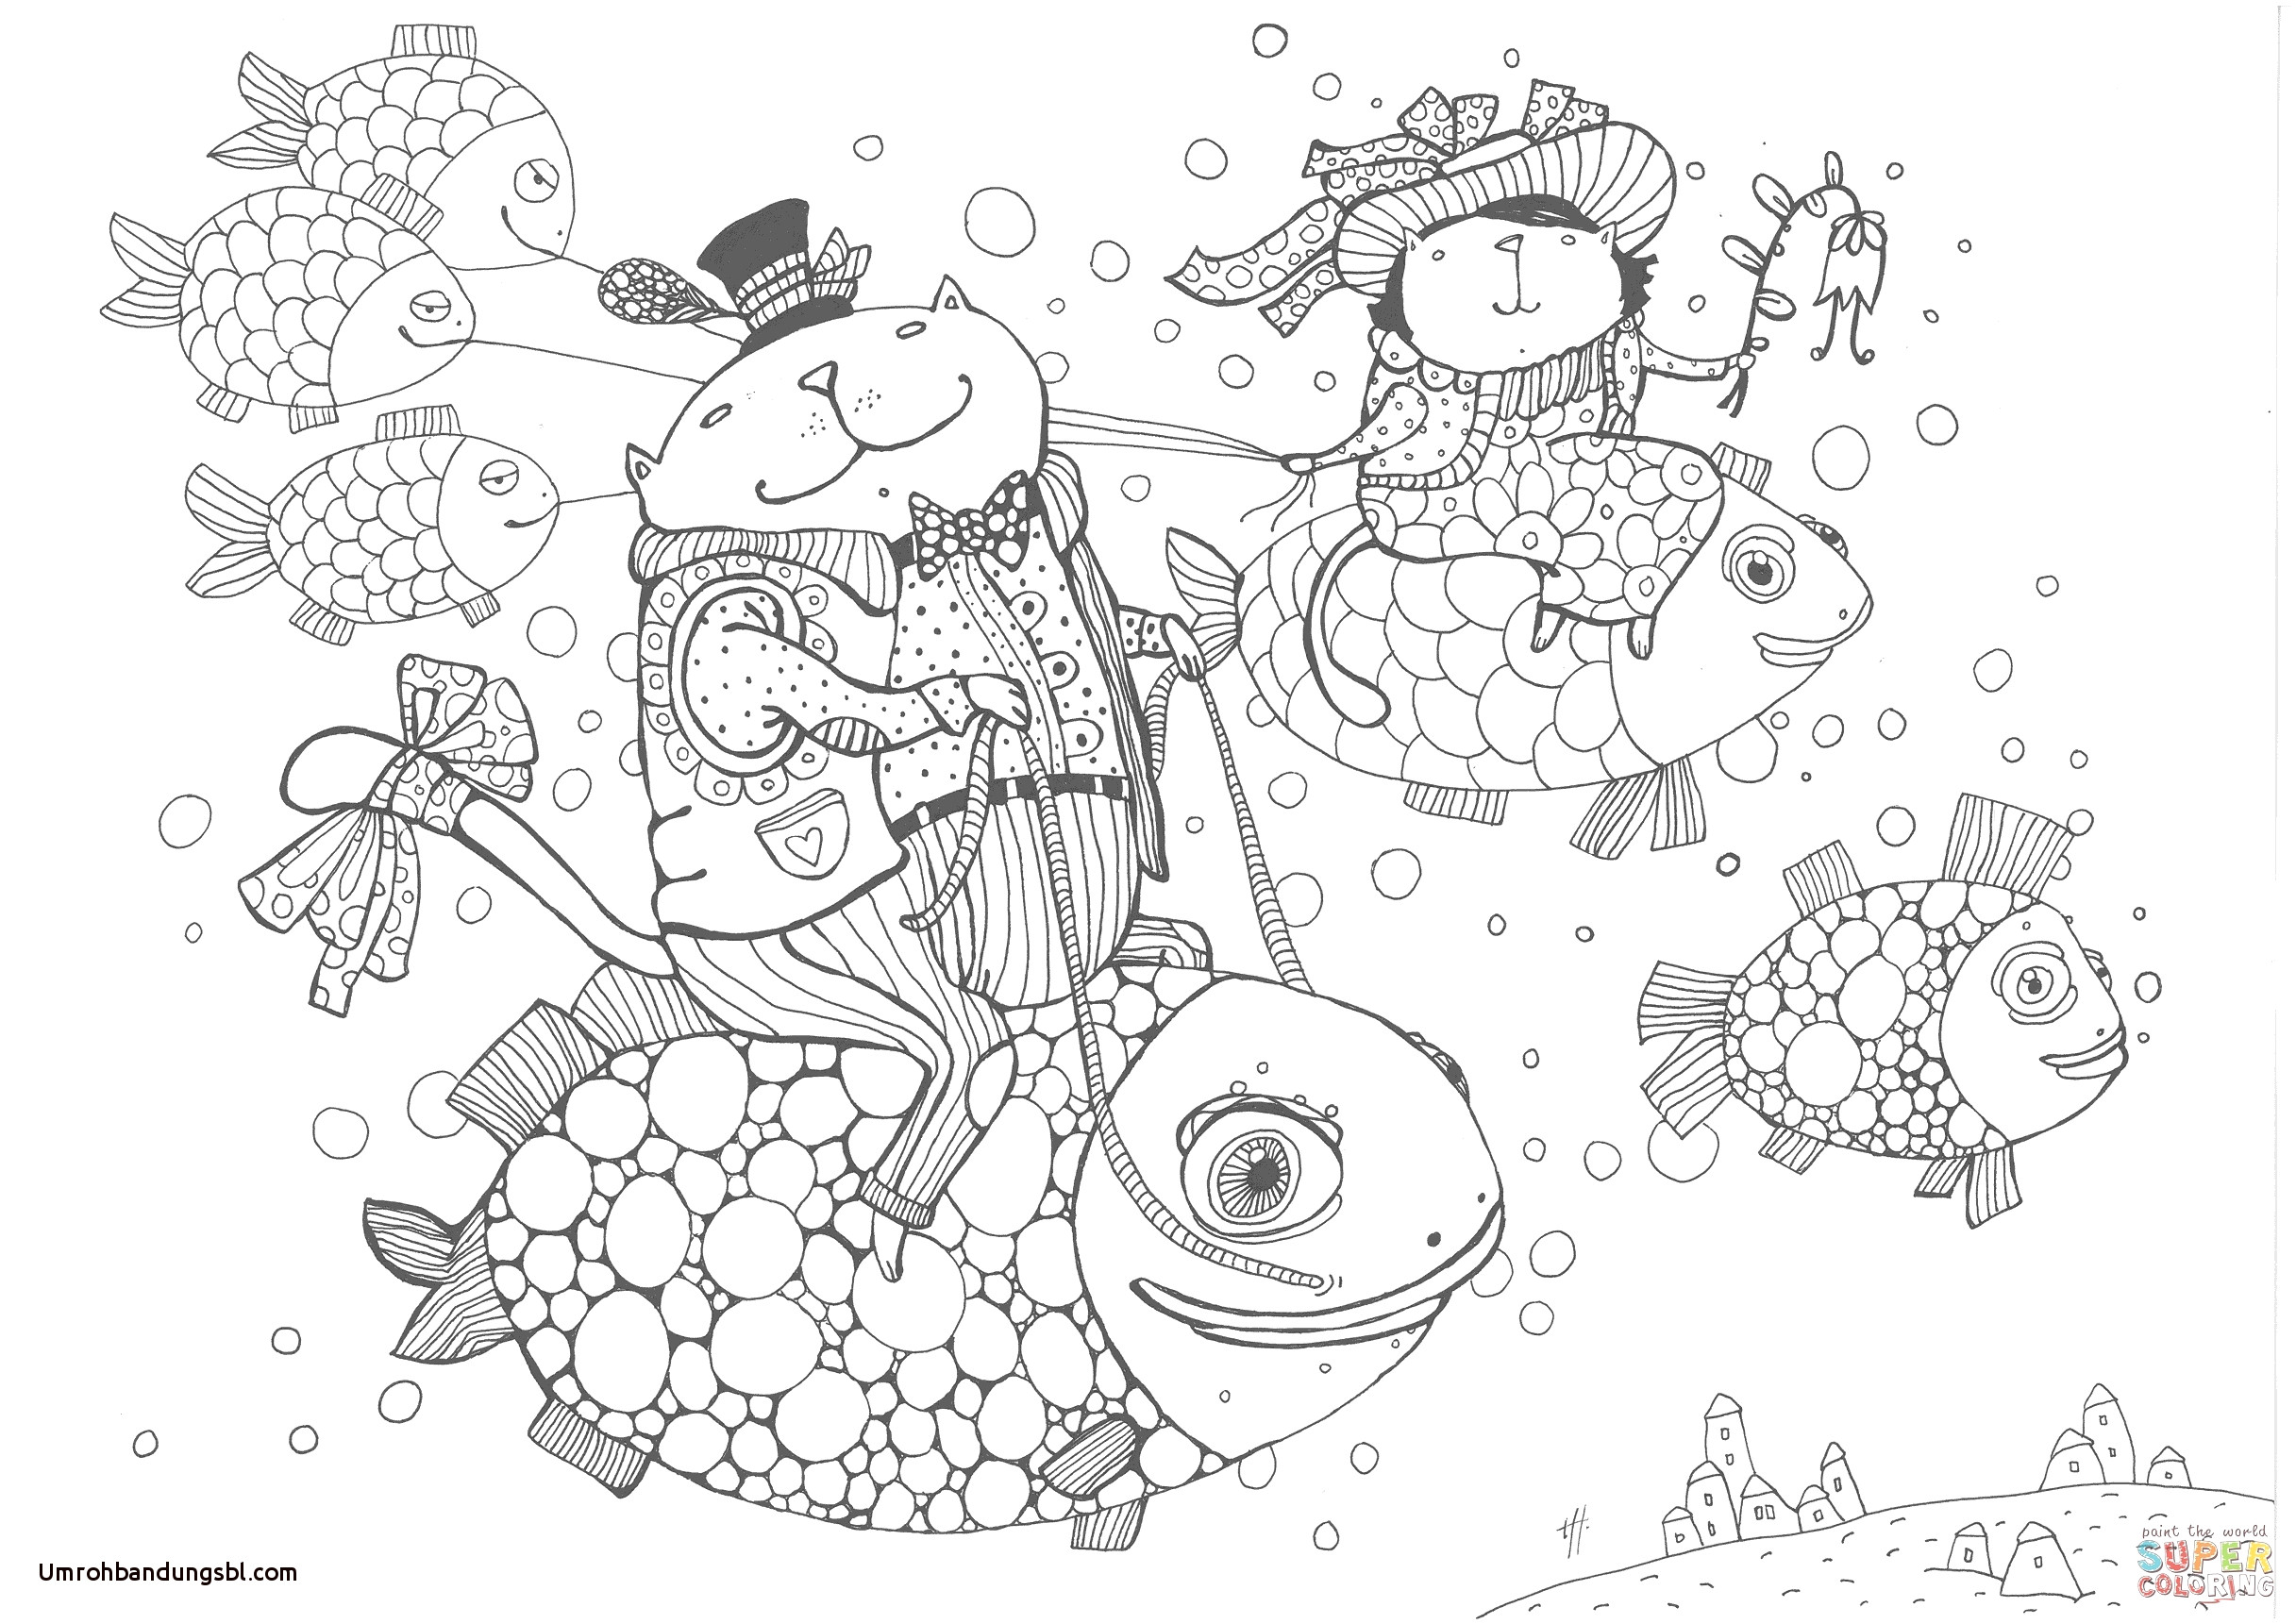 coloring pages for older kids Download-what to do with finished coloring pages new cool od dog coloring of things to do 12-t